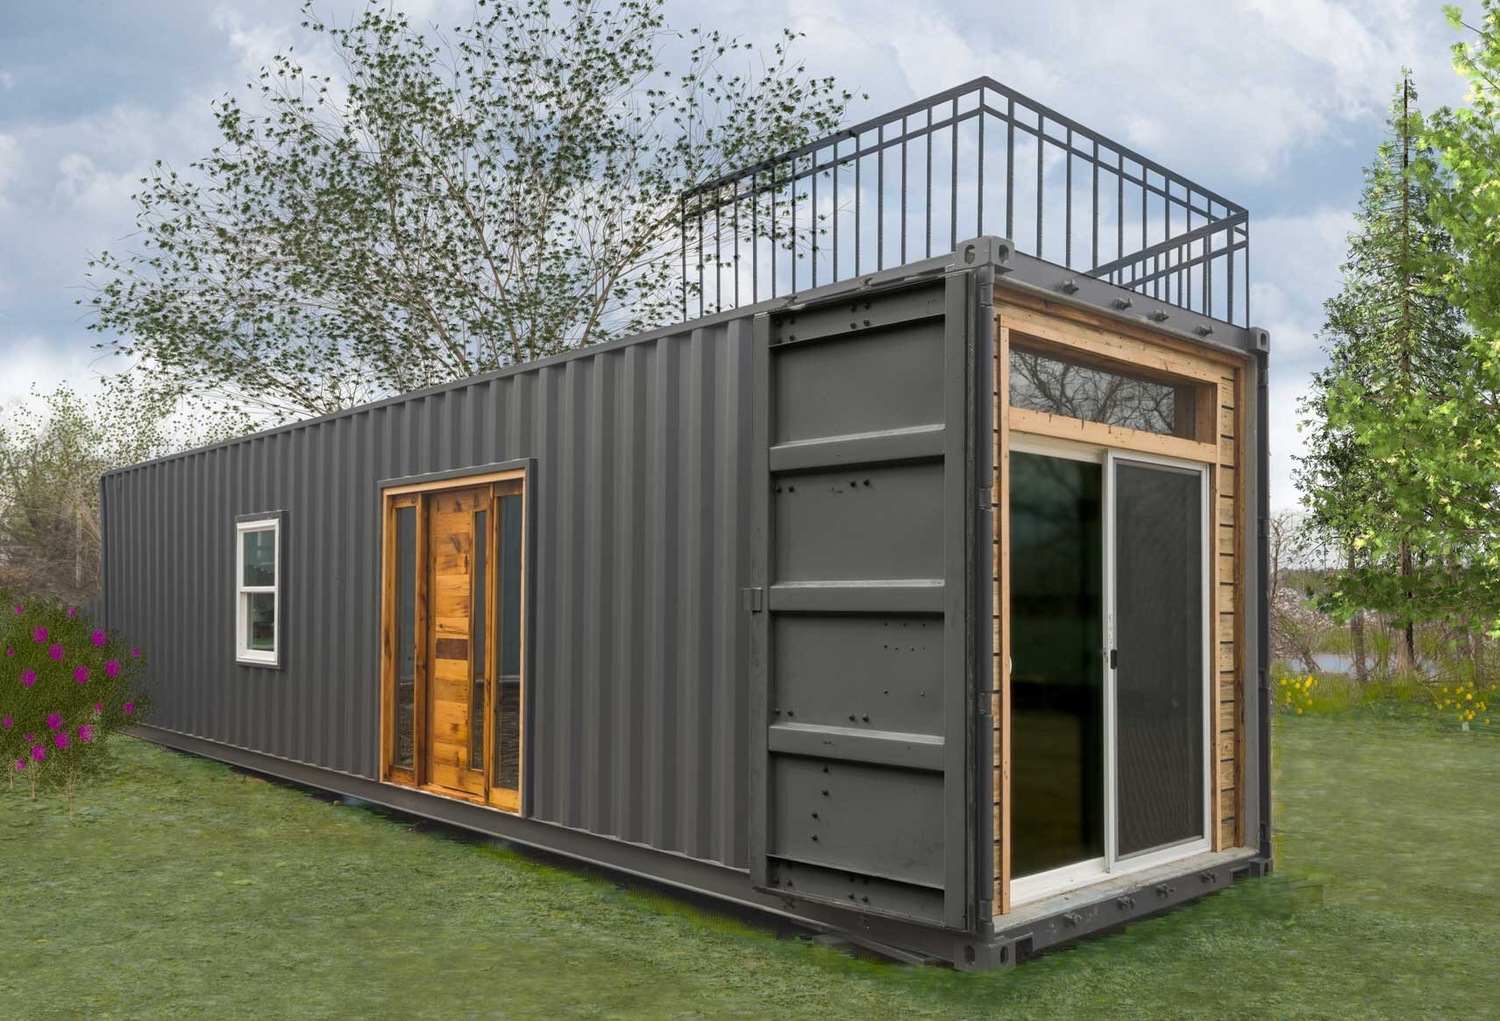 Modern Tiny House Interior: TINY HOUSE TOWN: Freedom From Minimalist Homes (300 Sq Ft